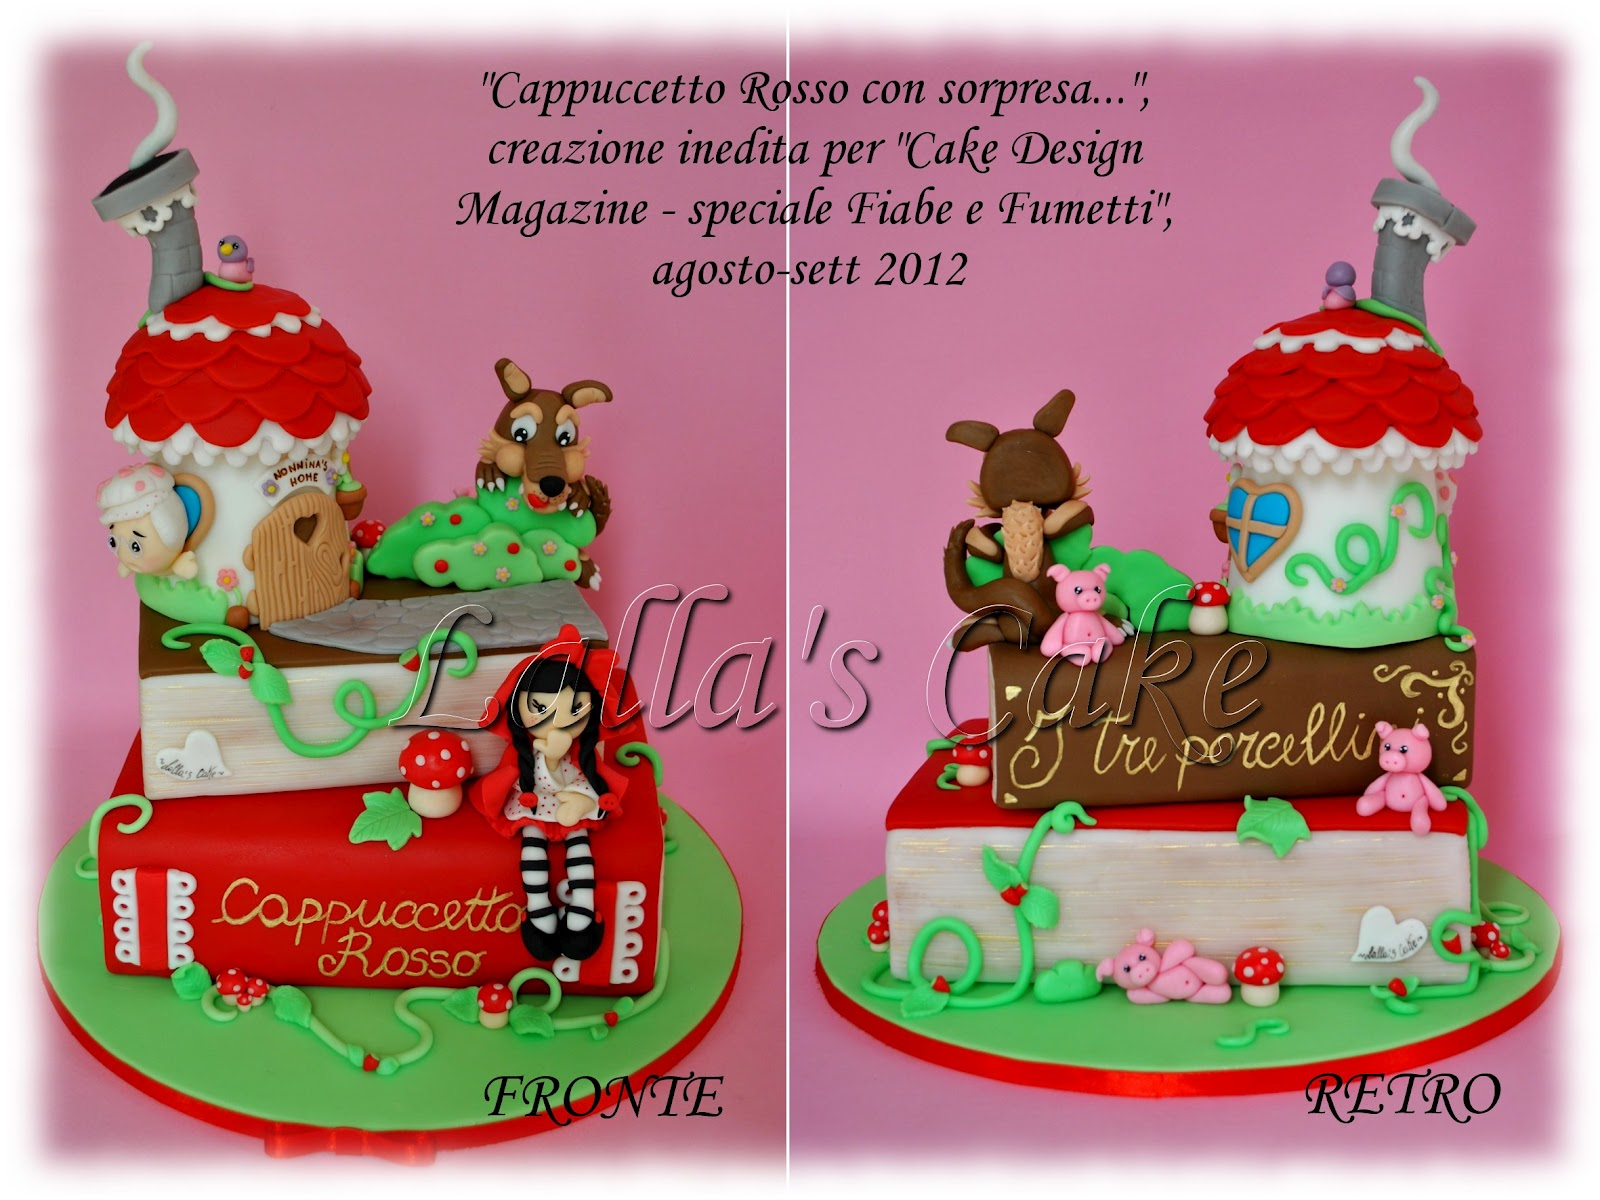 Cake Design Rivista Download : Lalla s Cake per